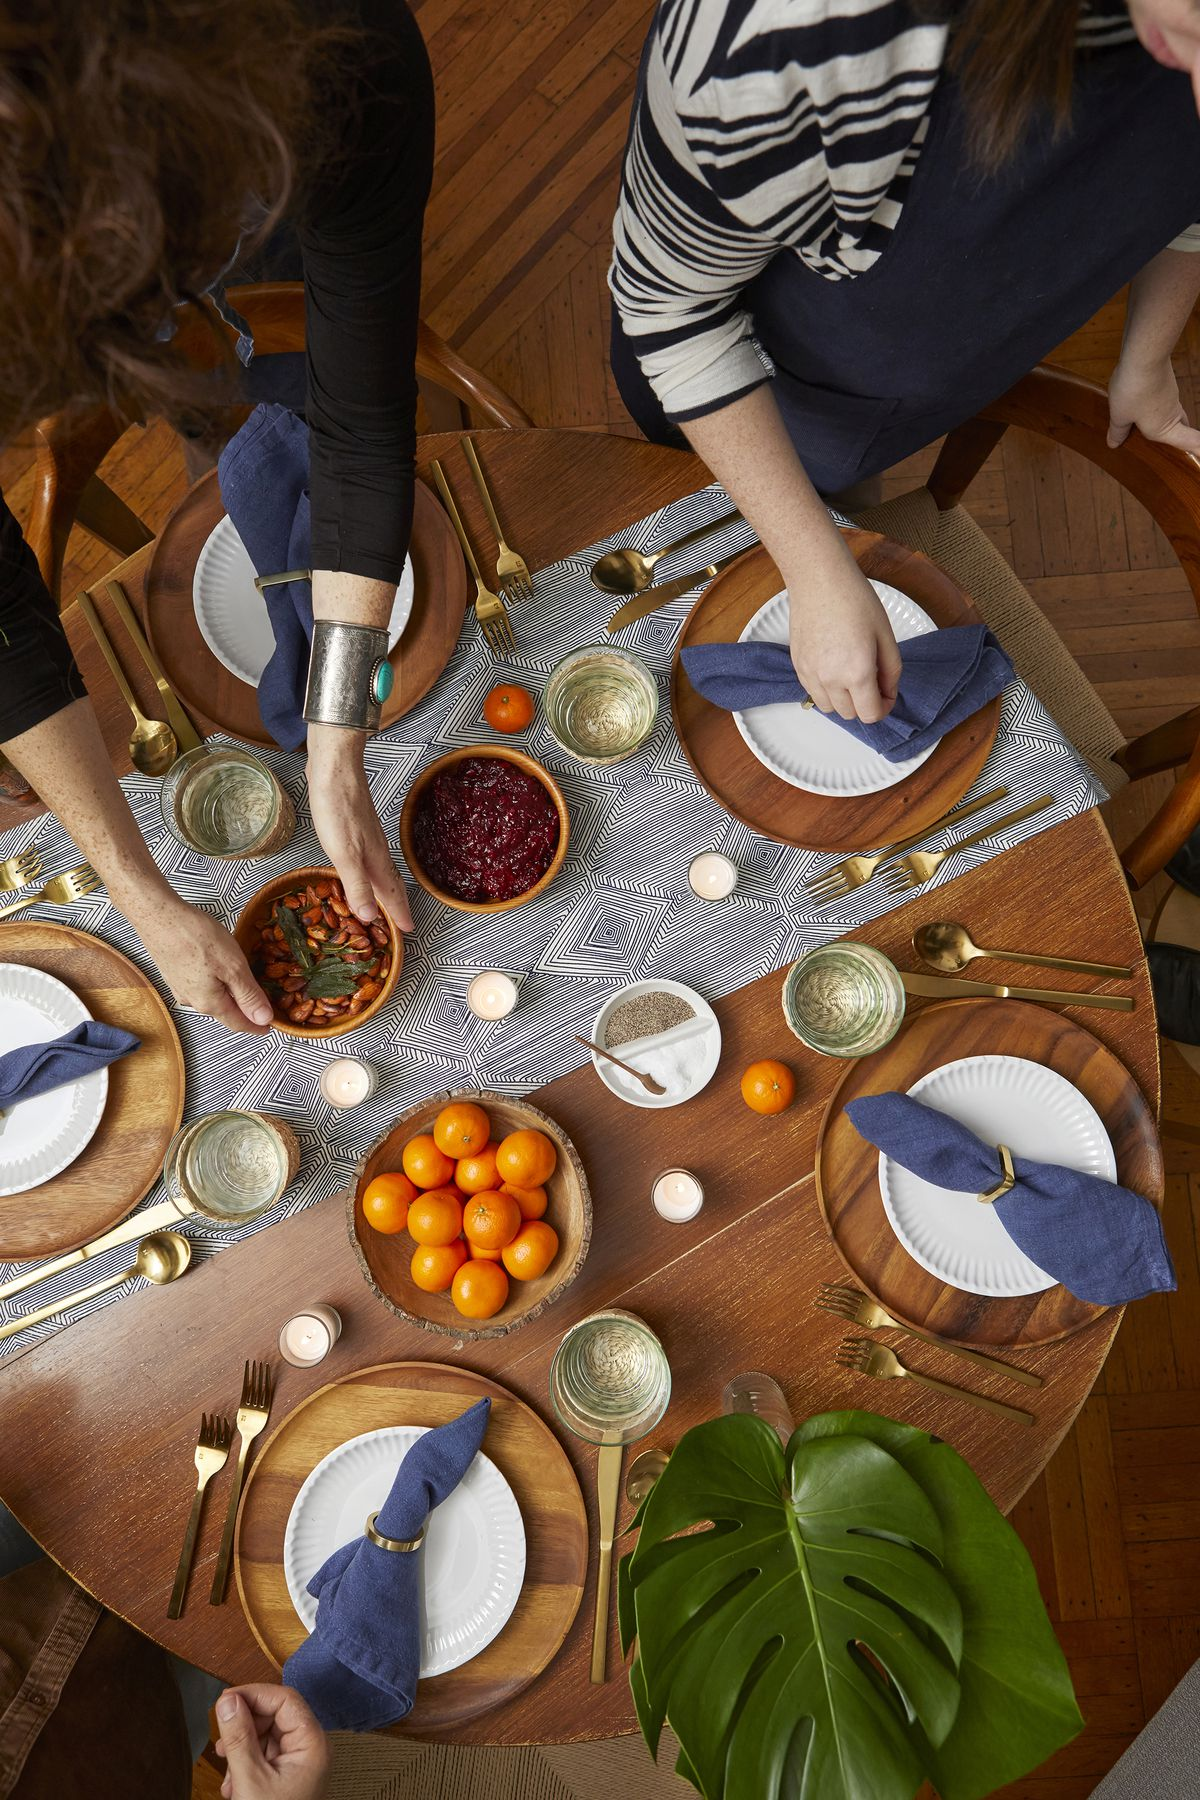 Overhead view of set table, with guests hands in the shot placing down bowls of food on the table.